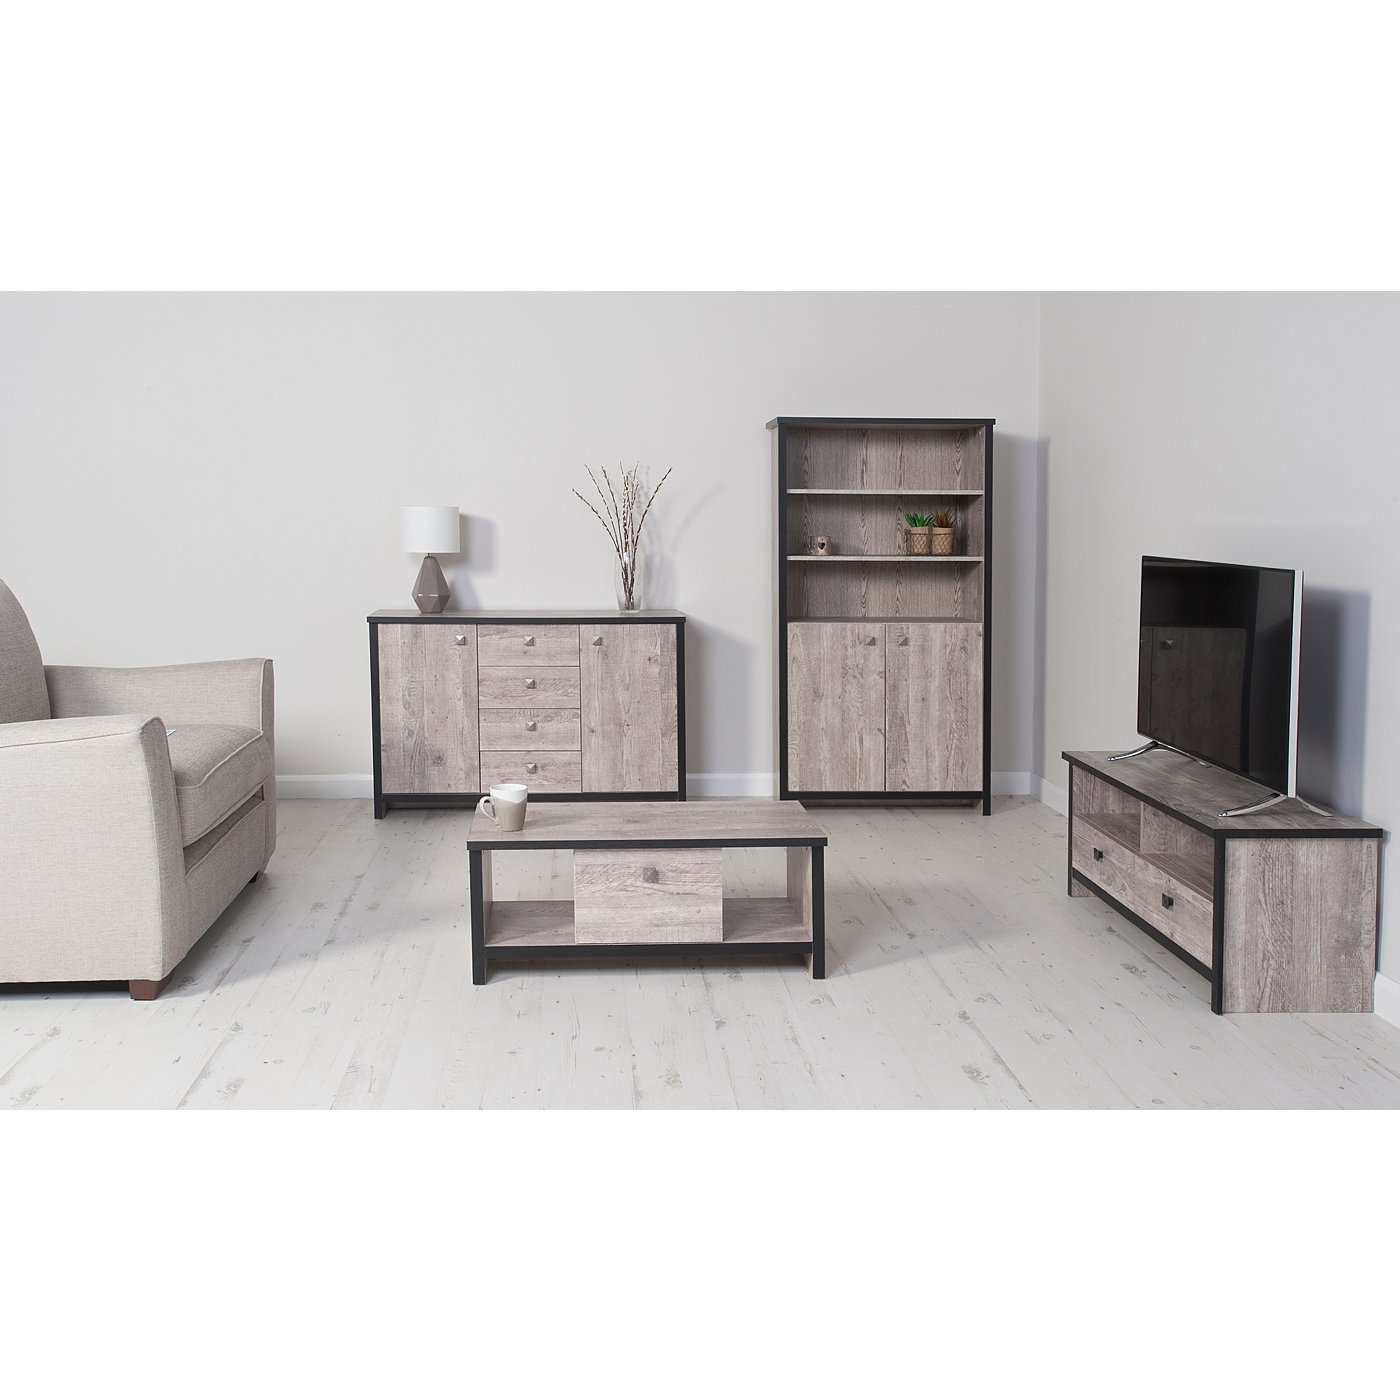 The Range Living Room Furniture George Home Declan Living Room Furniture Range Distressed Pine